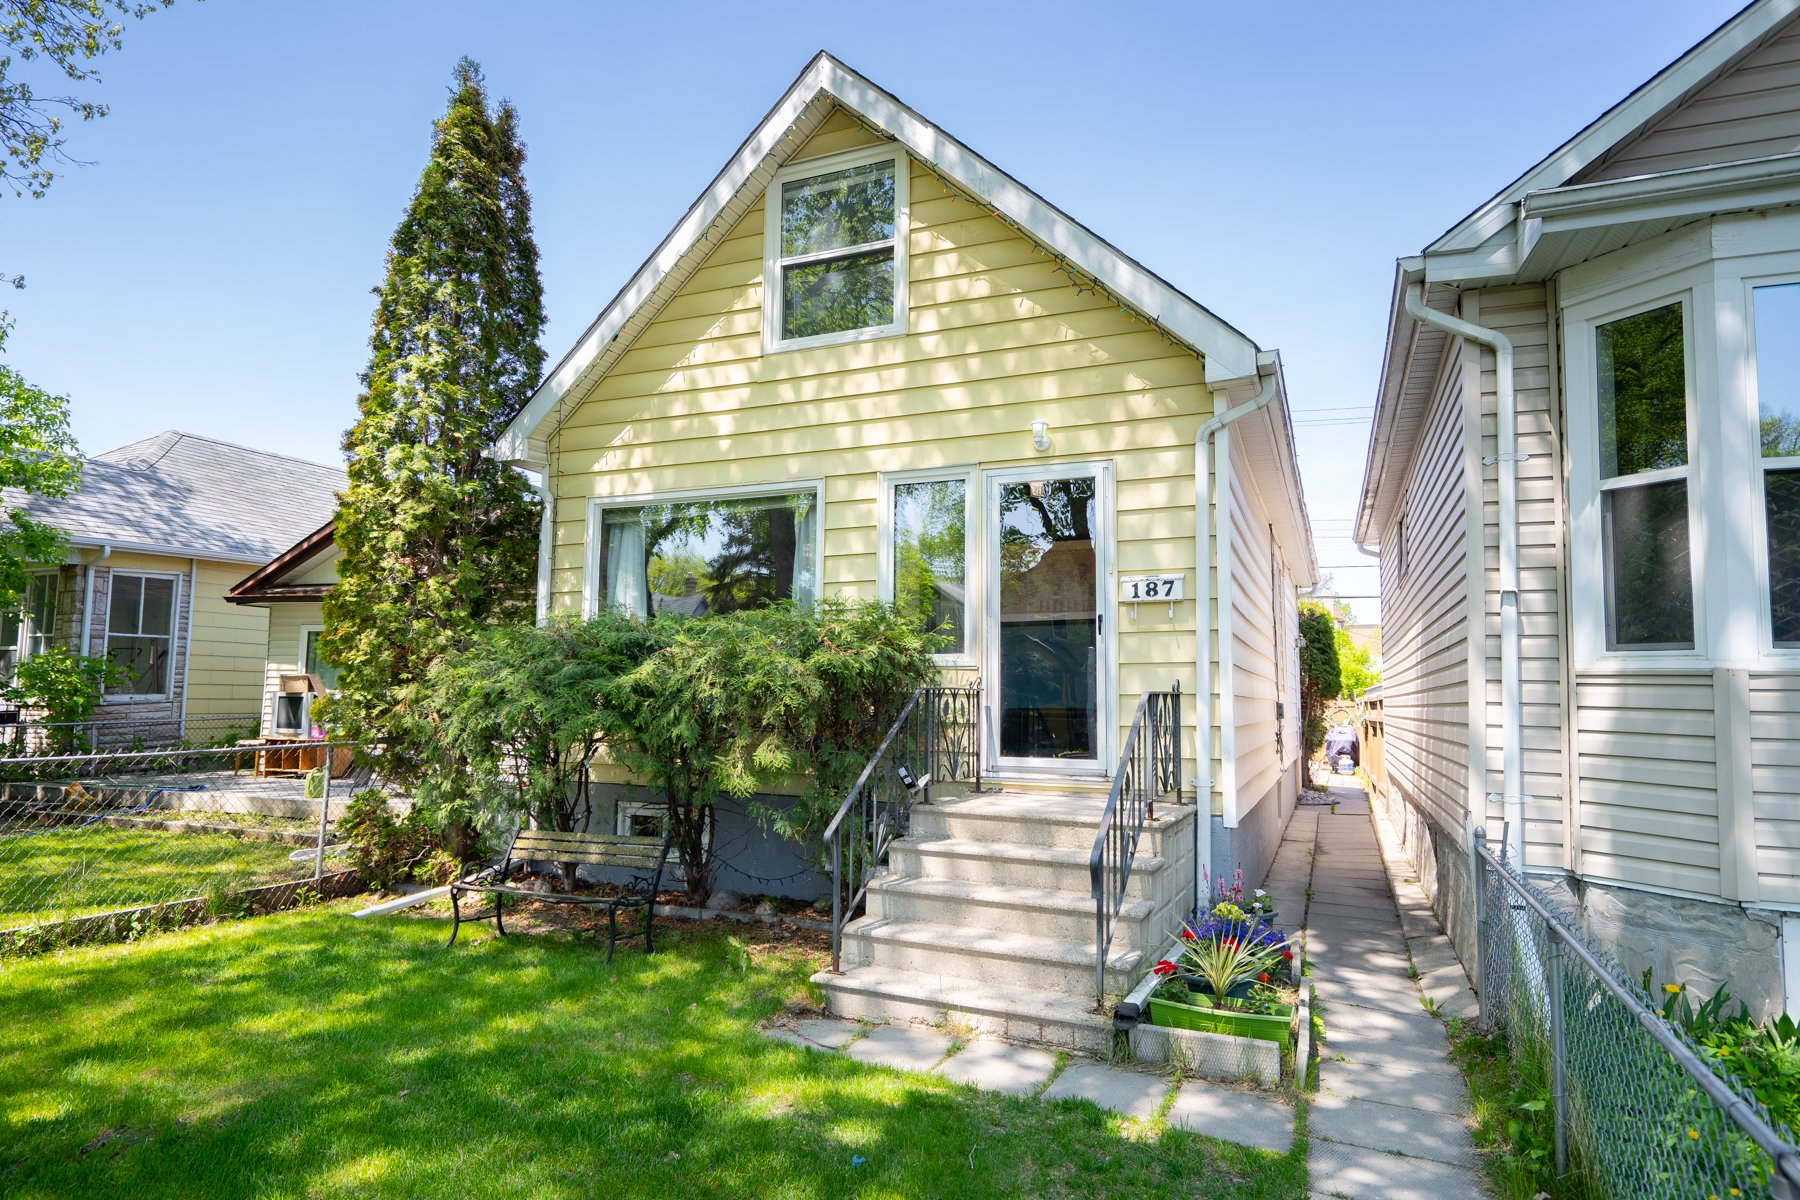 Main Photo: 187 Morley Avenue in Winnipeg: Riverview House for sale (1A)  : MLS®# 1910296